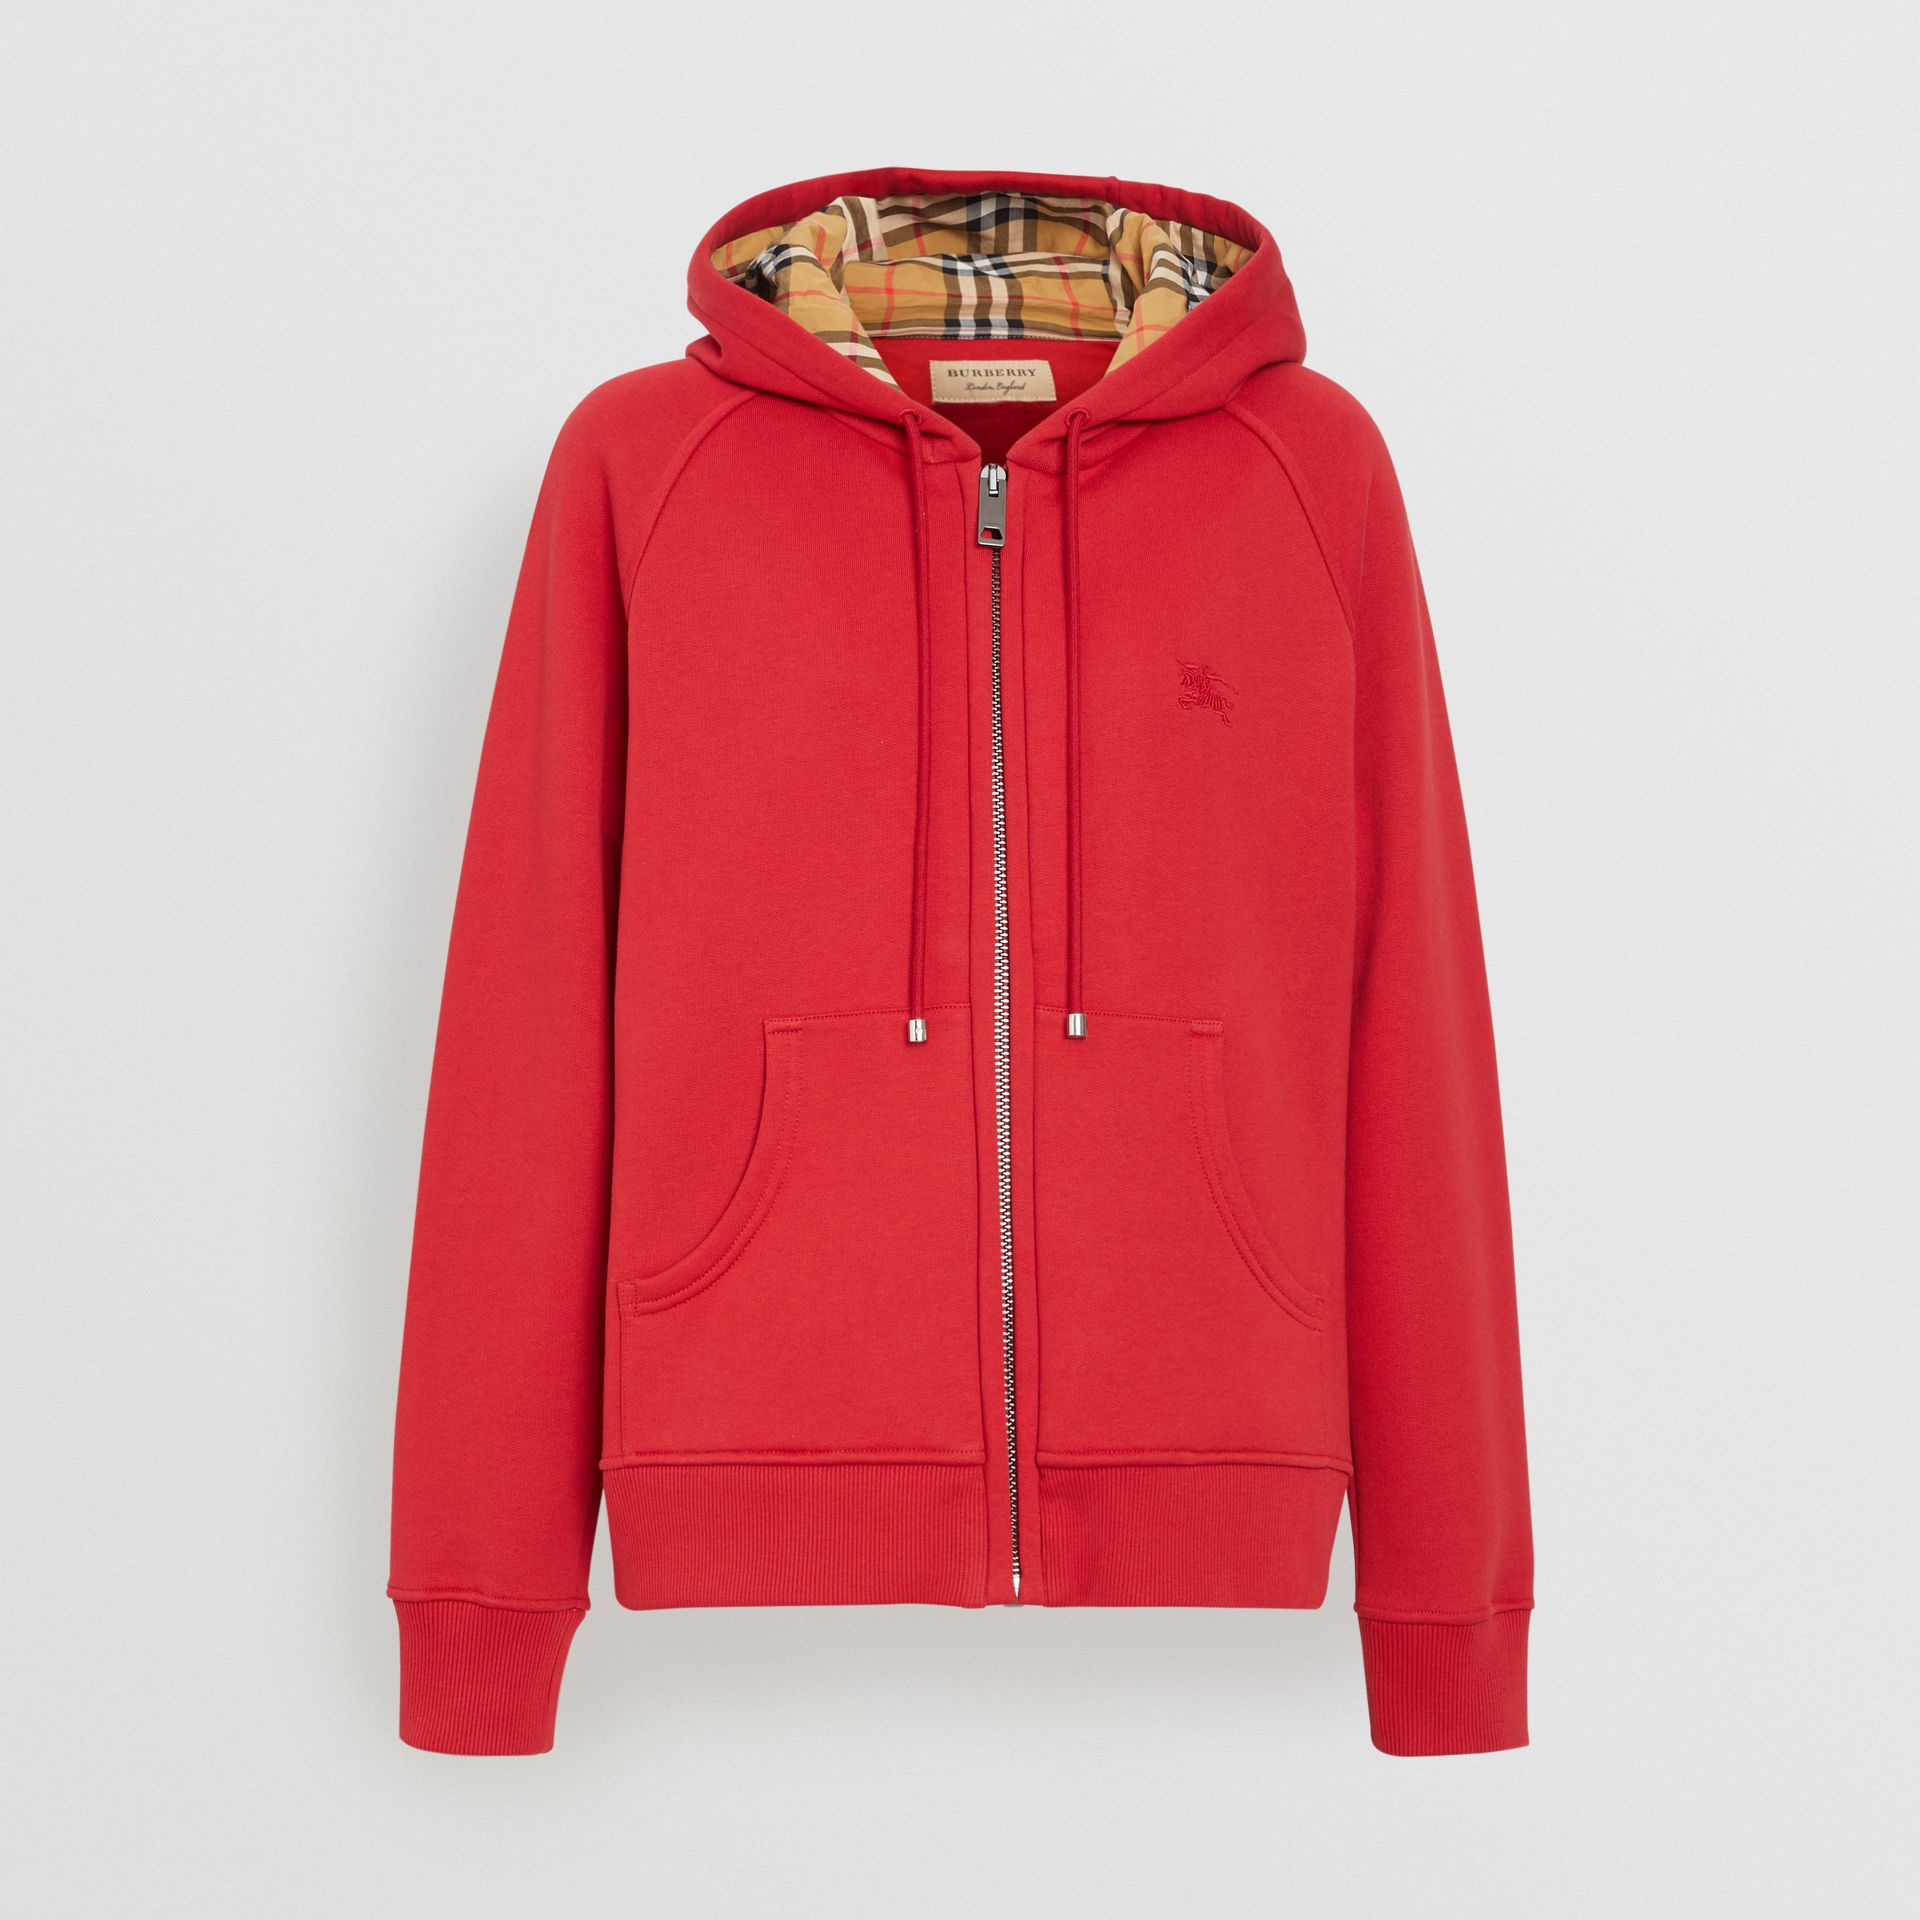 Vintage Check Detail Jersey Hooded Top in Cadmium Red - Women | Burberry Canada - gallery image 3